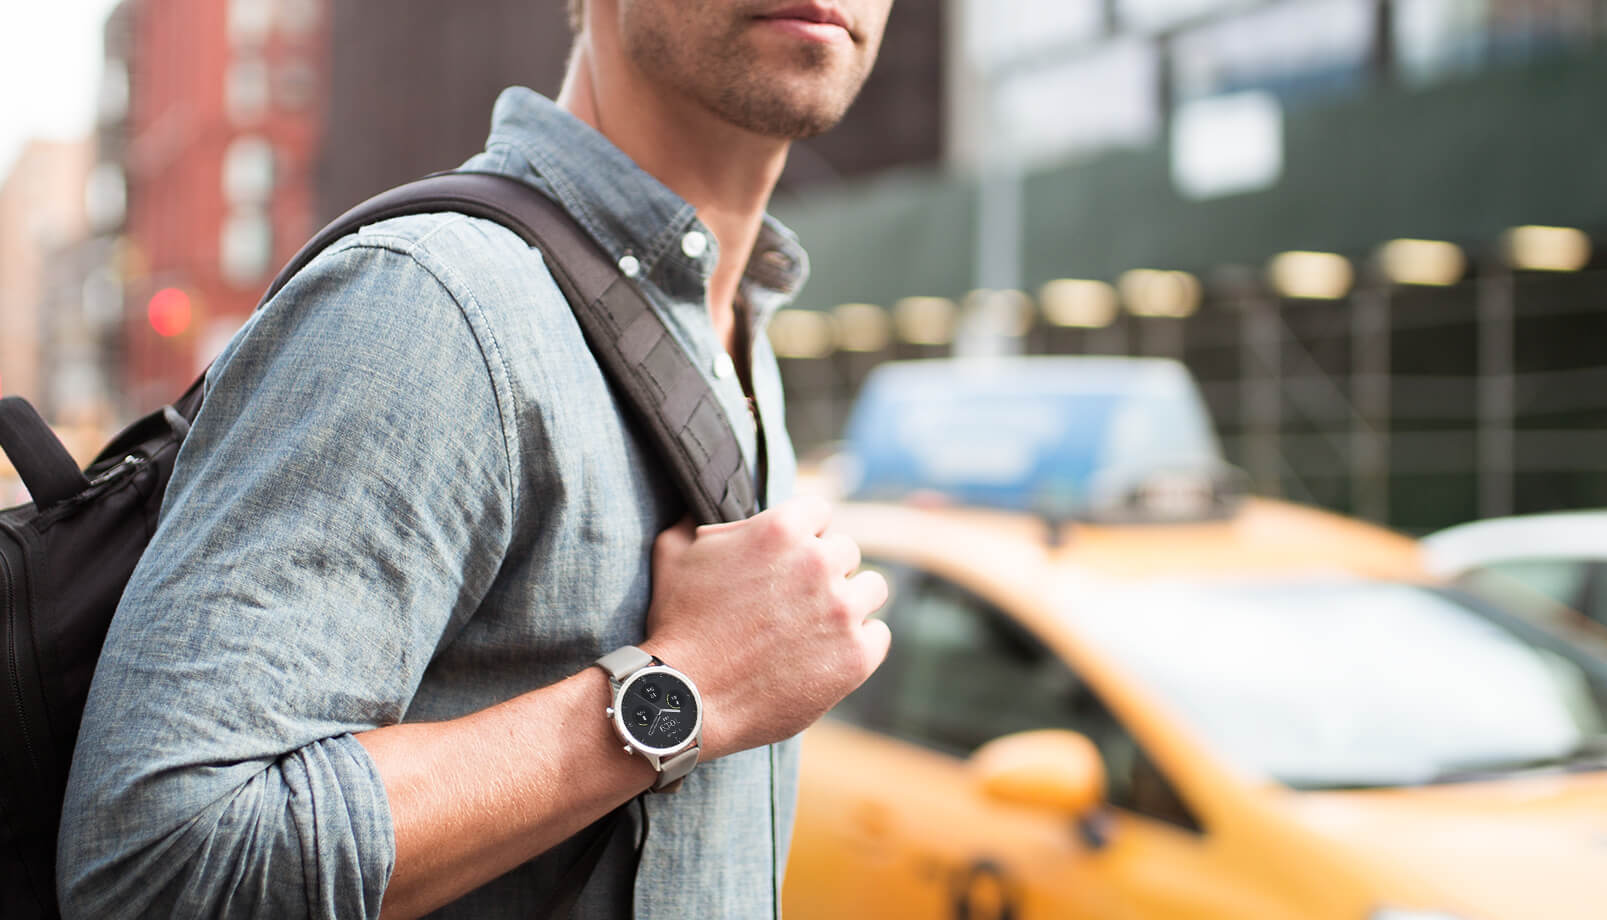 TicWatch C2 smartwatch,Mobvoi AI wearable technology.